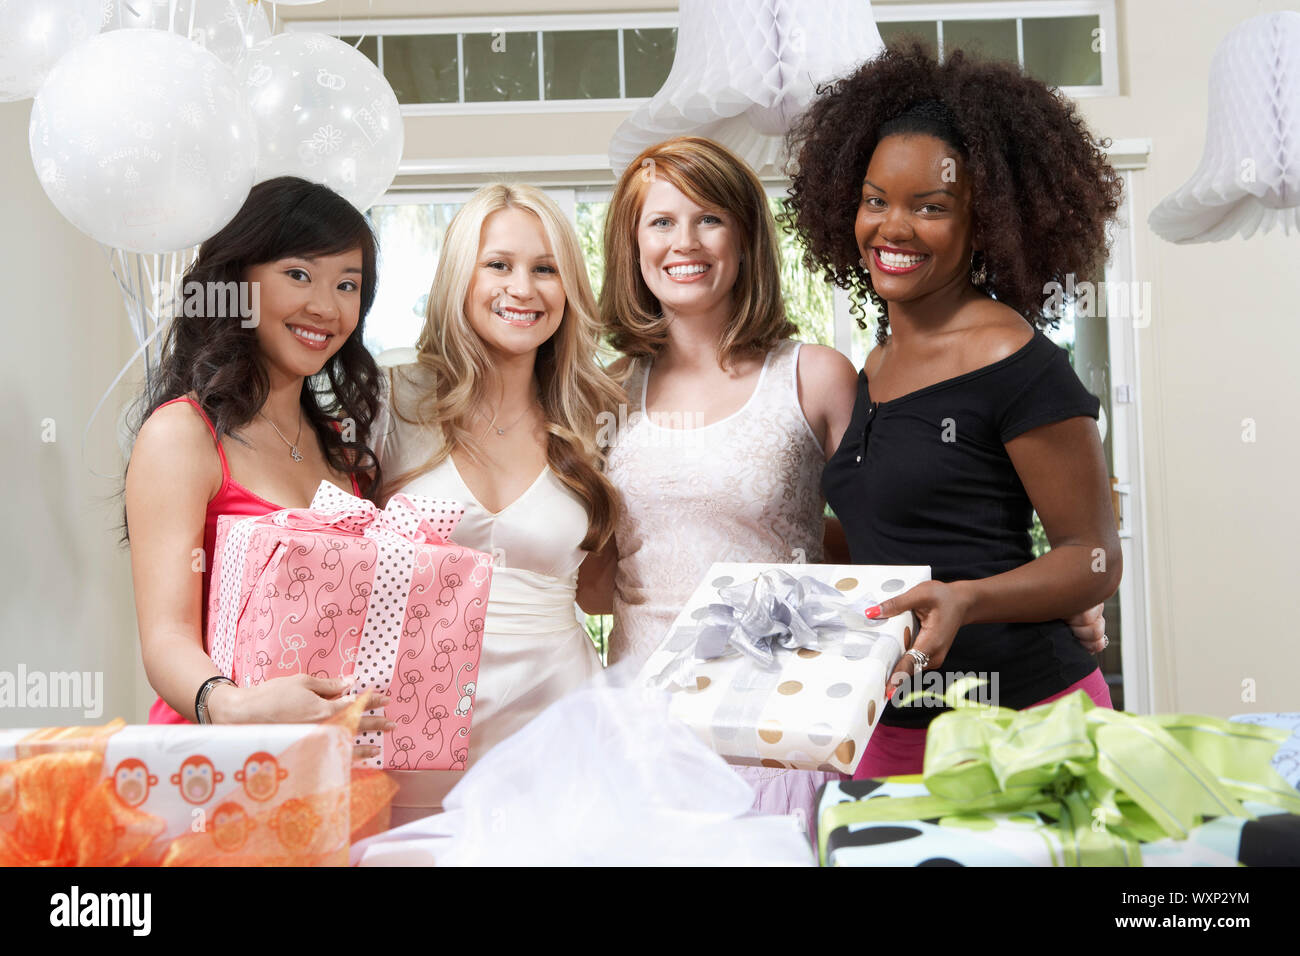 Friends Together at Bridal Shower Stock Photo